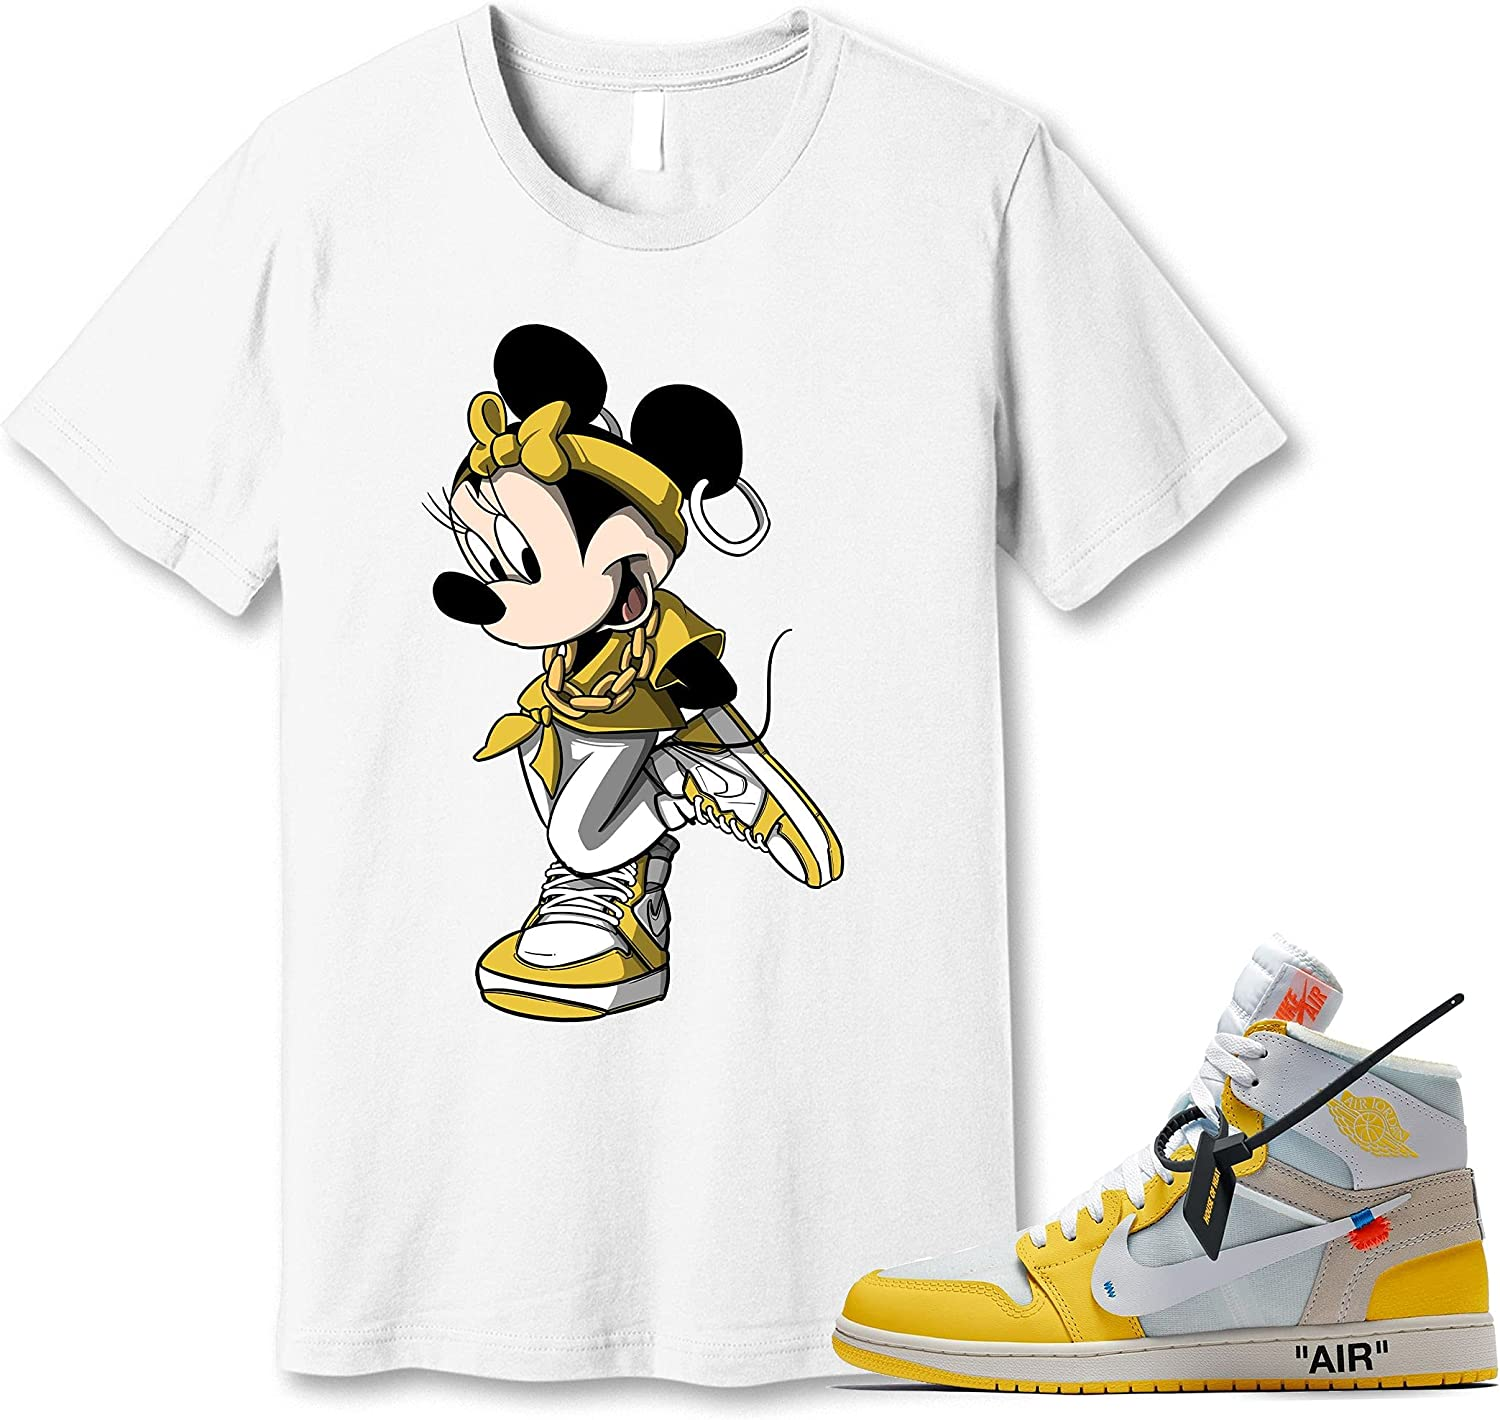 #Minnie Mouse White T-Shirt SEAL limited product to Match Yellow 1 Max 44% OFF Snea Jordan Canary